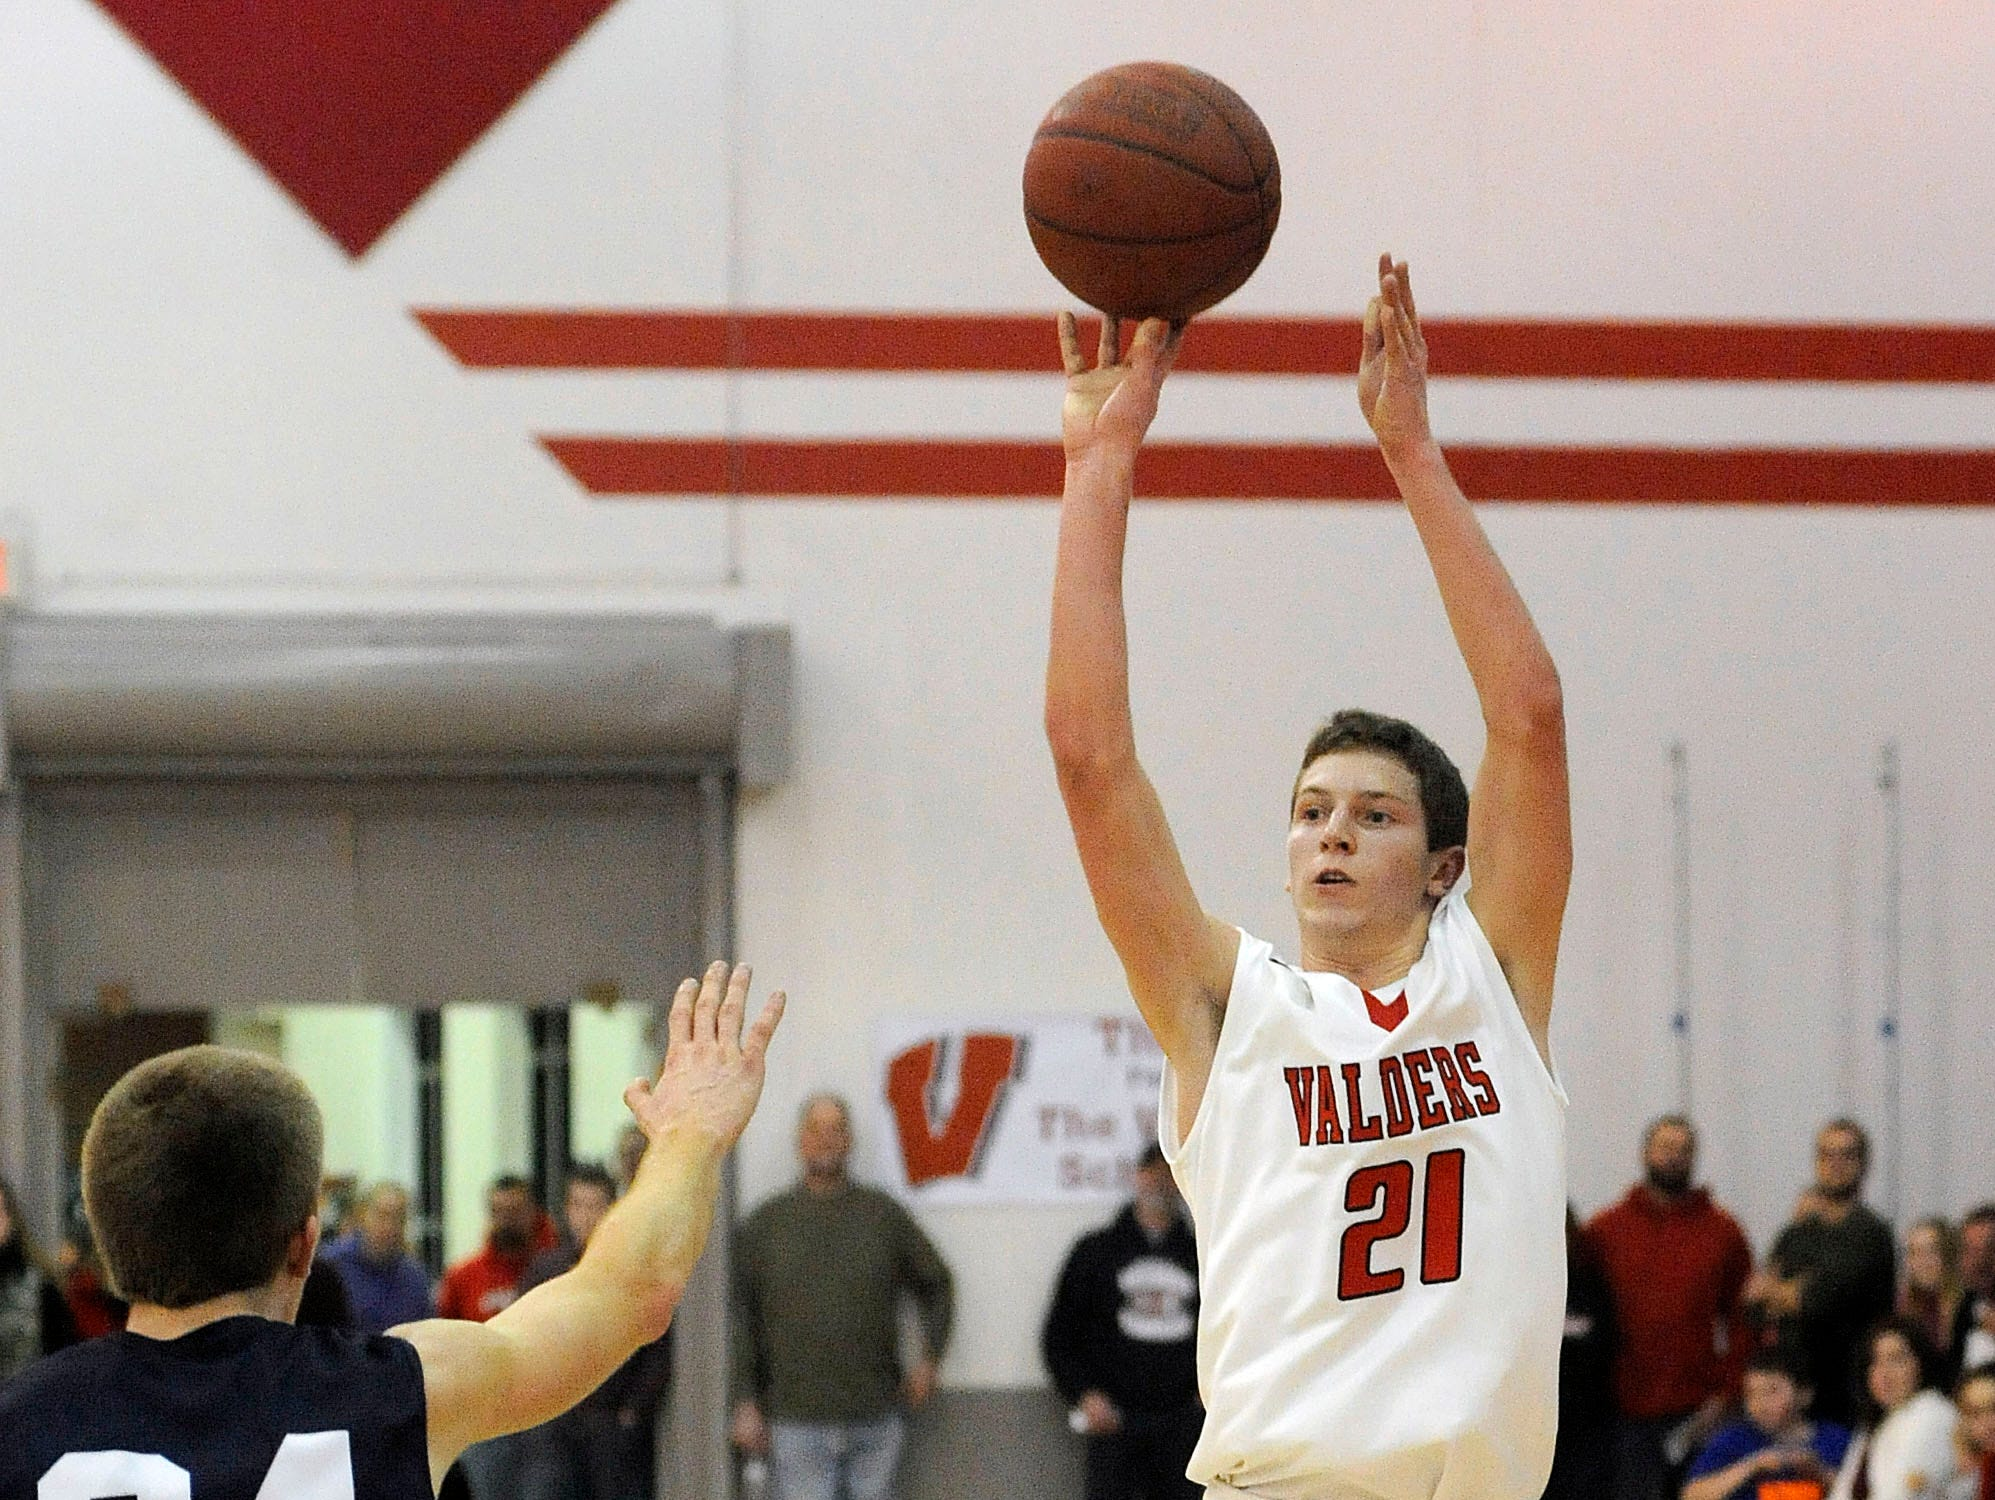 Valders' Thomas Schwoerer is the 2015 HTR Media Boys Basketball Player of the Year.